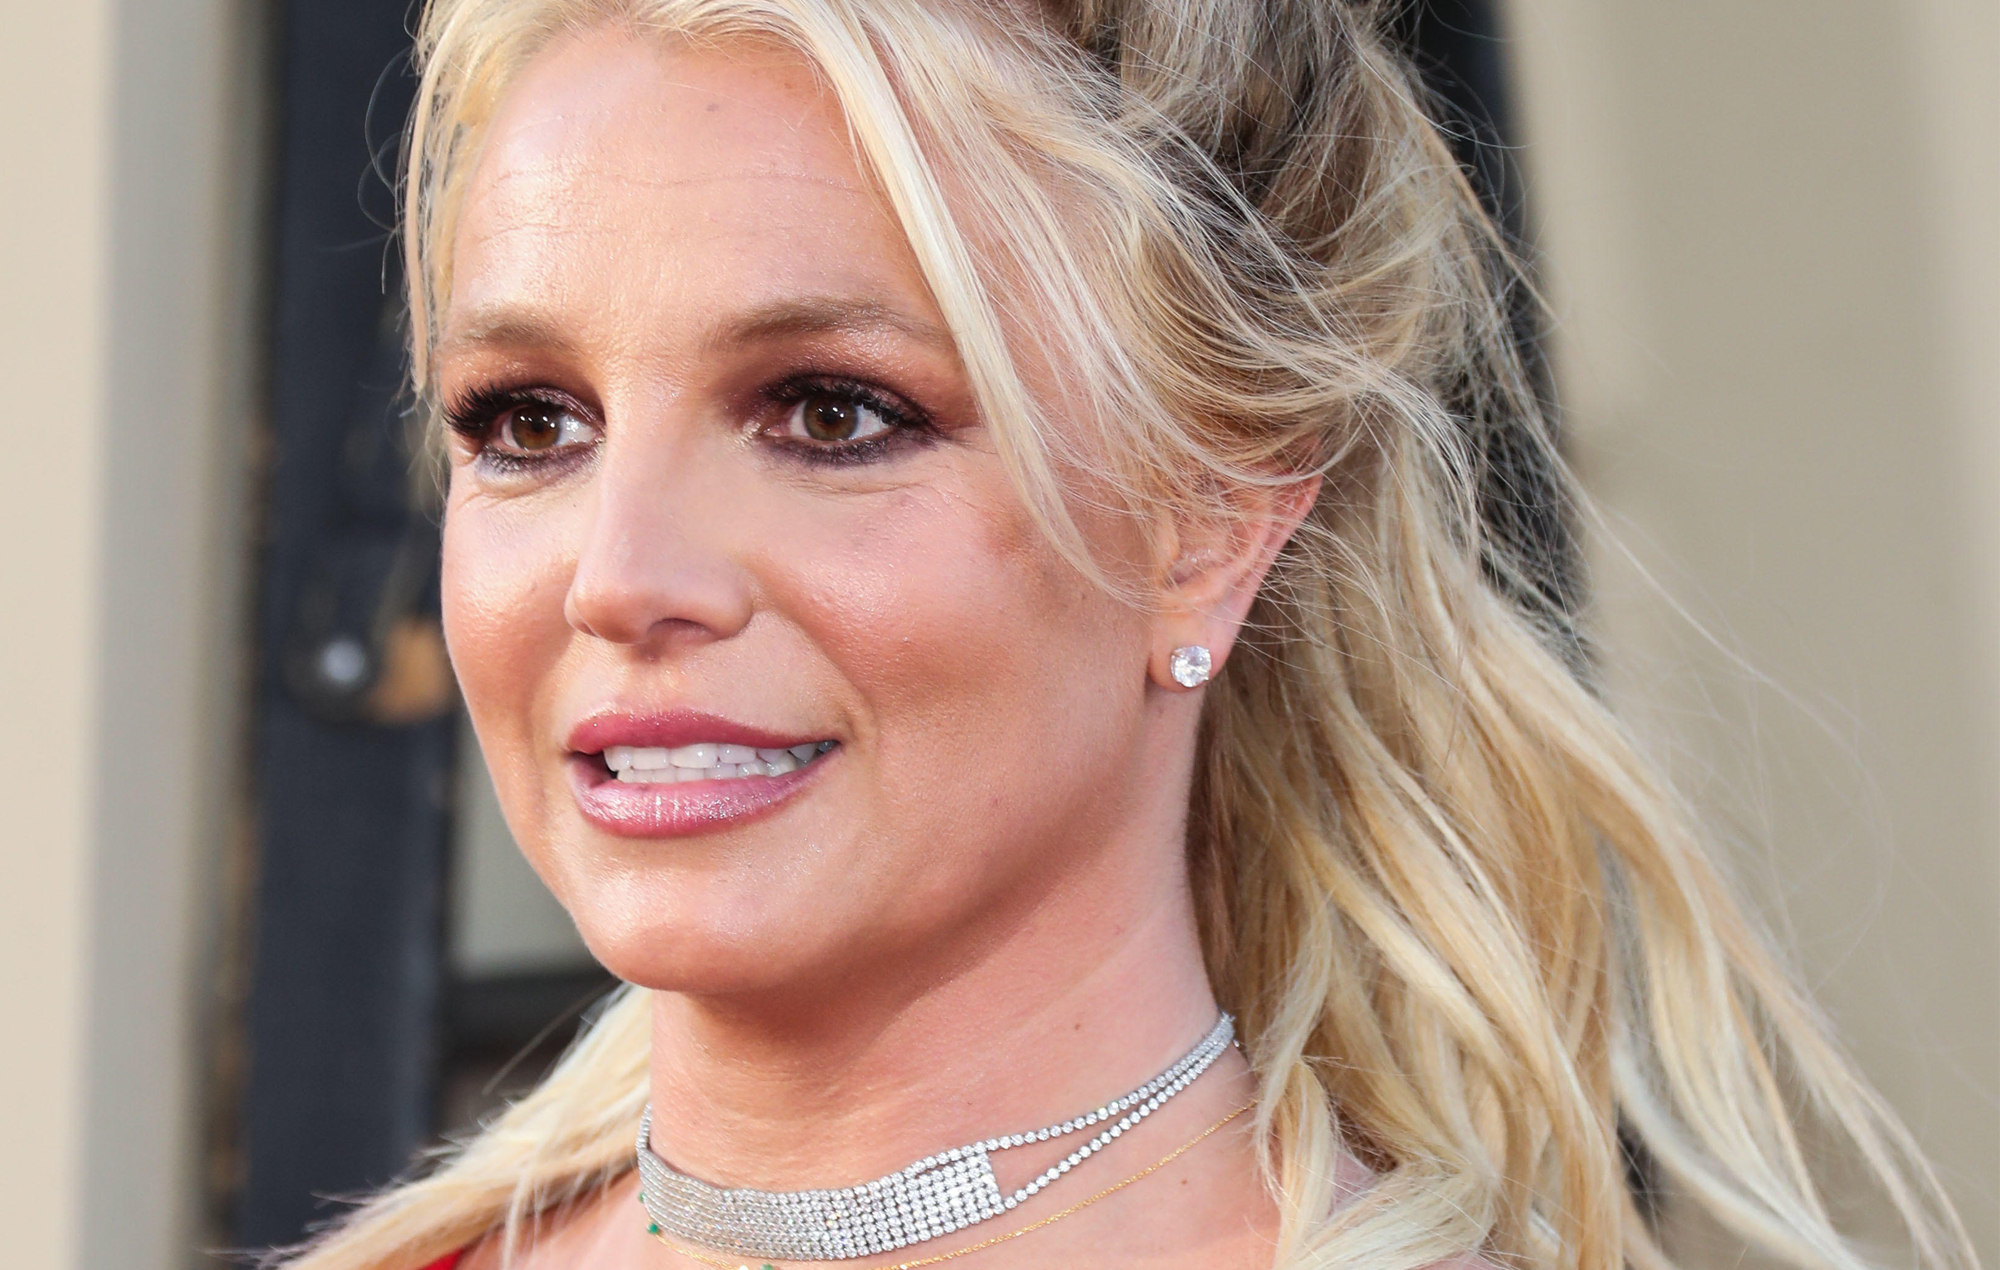 Britney Spears tells court she wants her father Jamie charged with conservatorship abuse